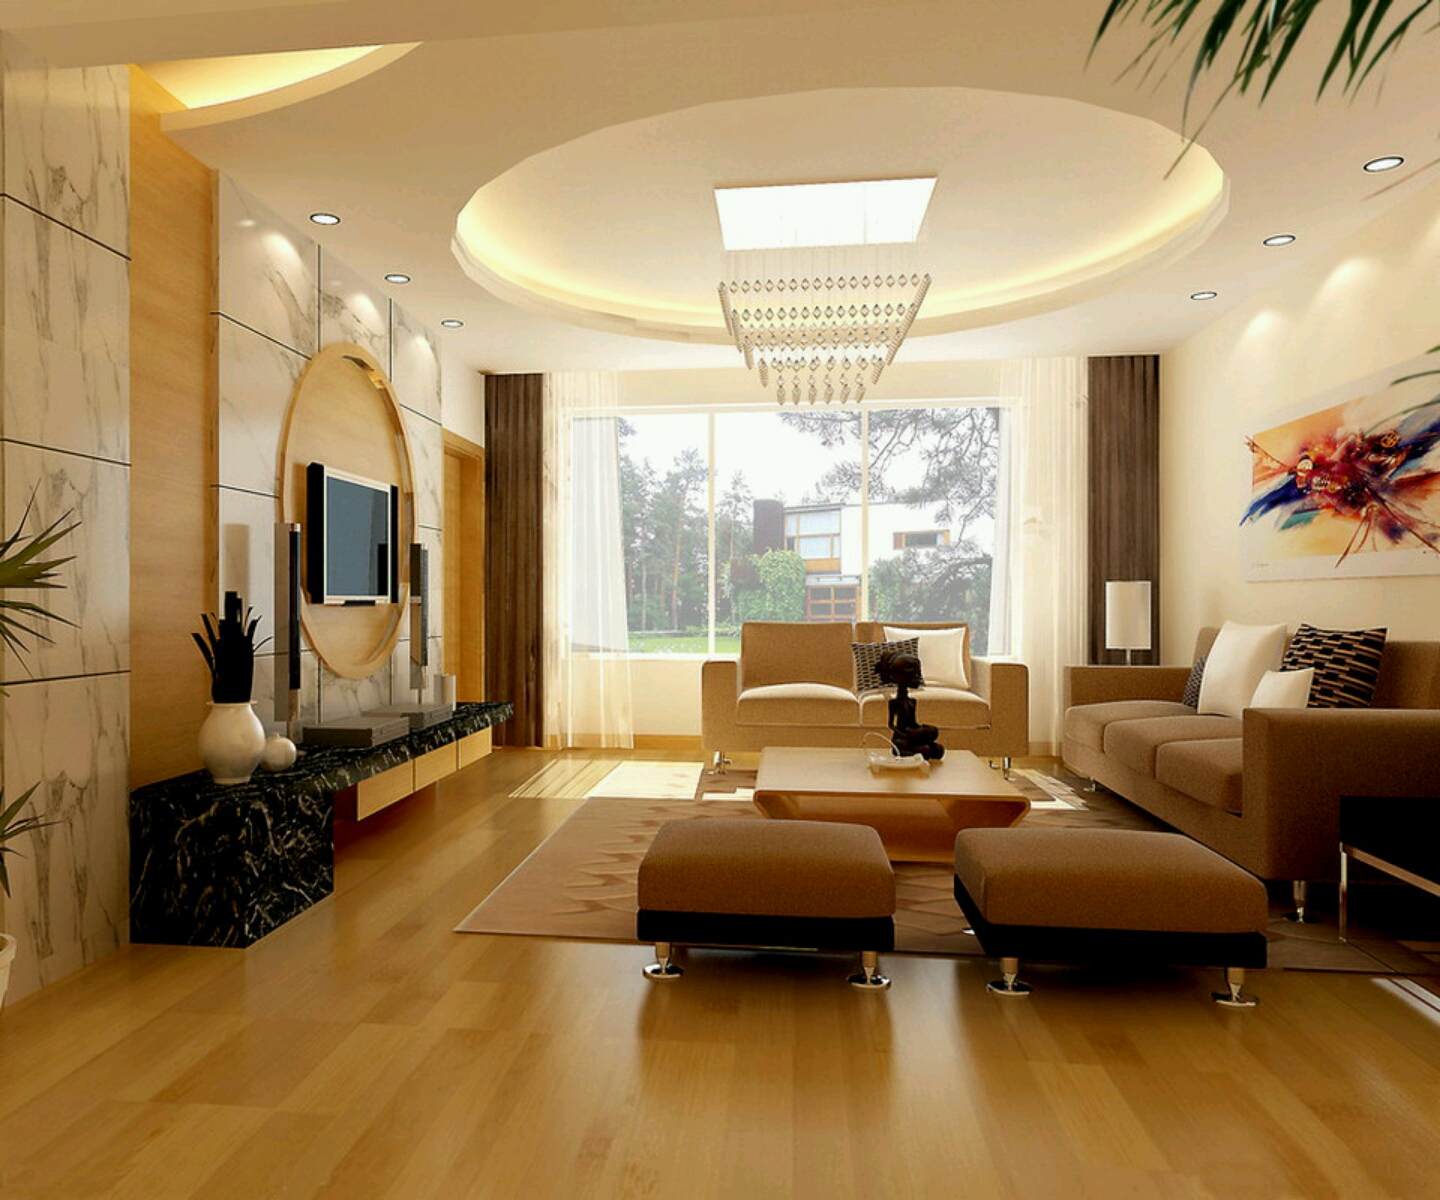 Modern interior decoration living rooms ceiling designs for Modern apartment decorating ideas photos